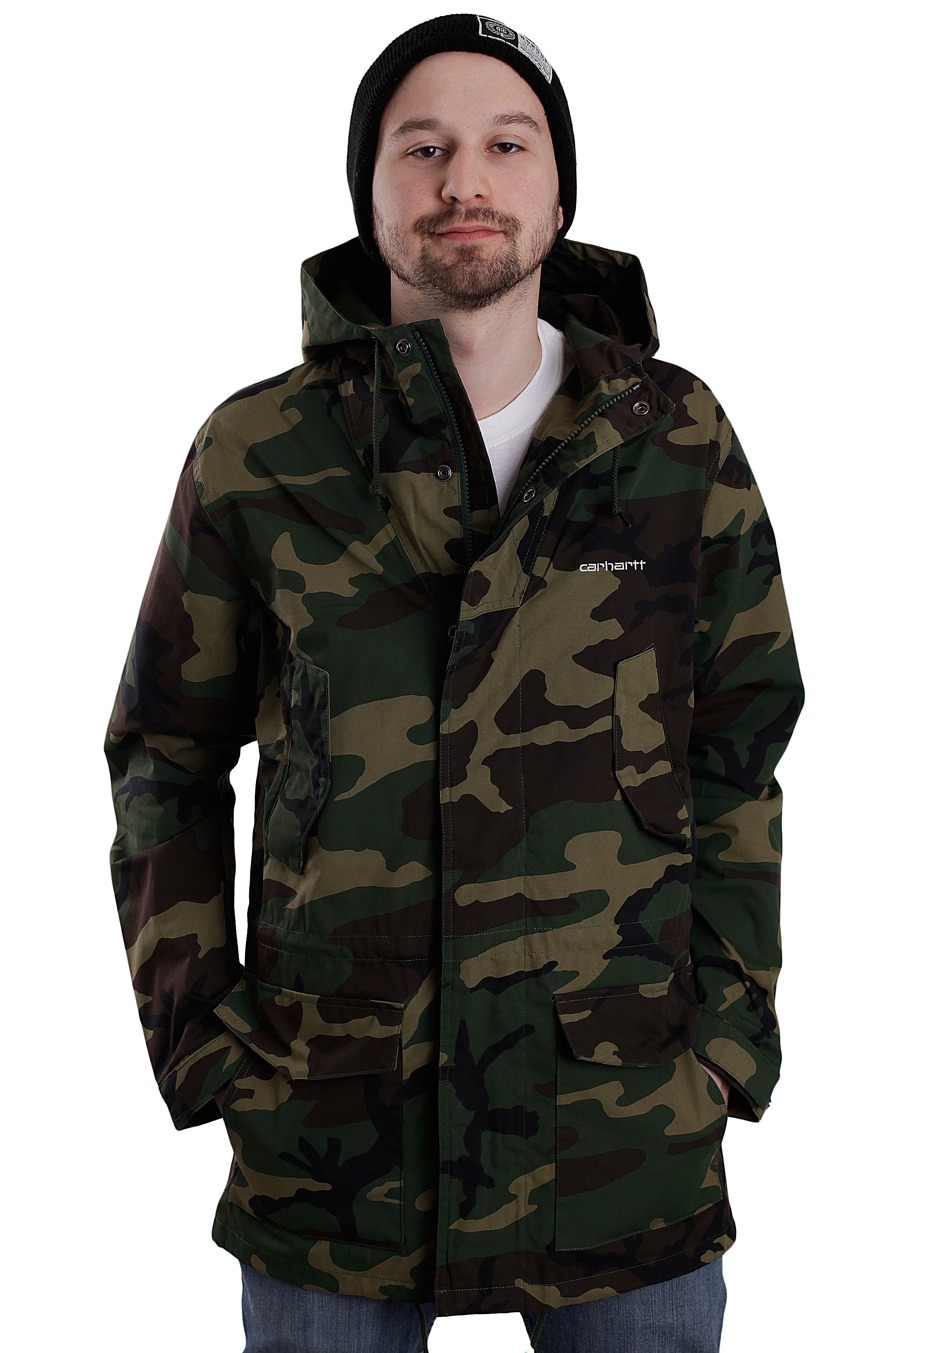 carhartt wip battle camo green rigid parka jacket streetwear shop uk. Black Bedroom Furniture Sets. Home Design Ideas